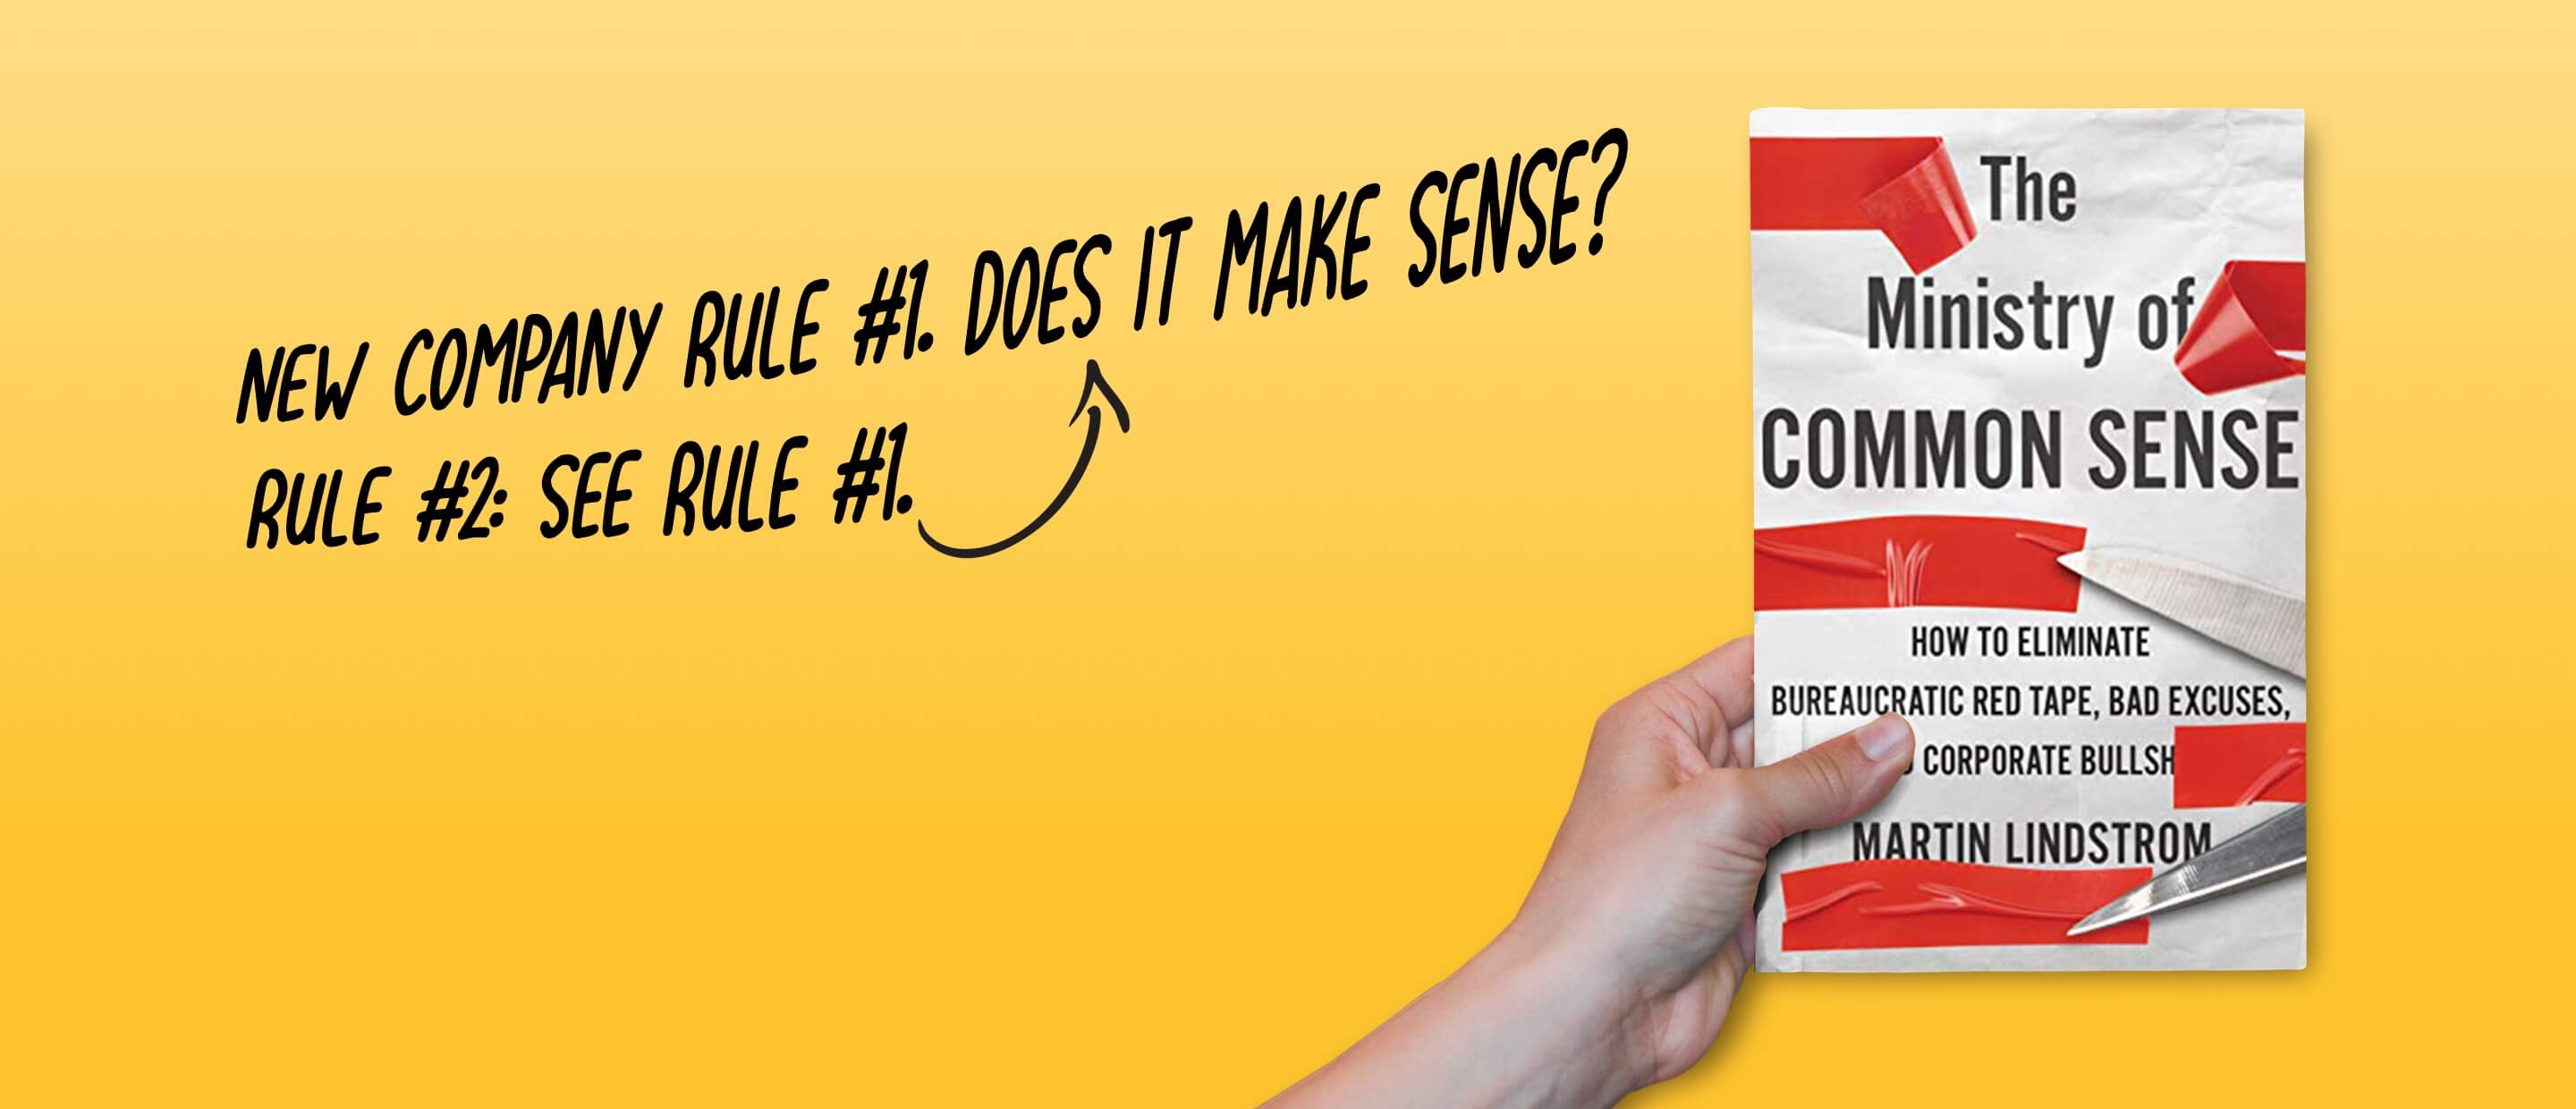 Banner for The Ministry of common sense - Martin Lindstrom Book